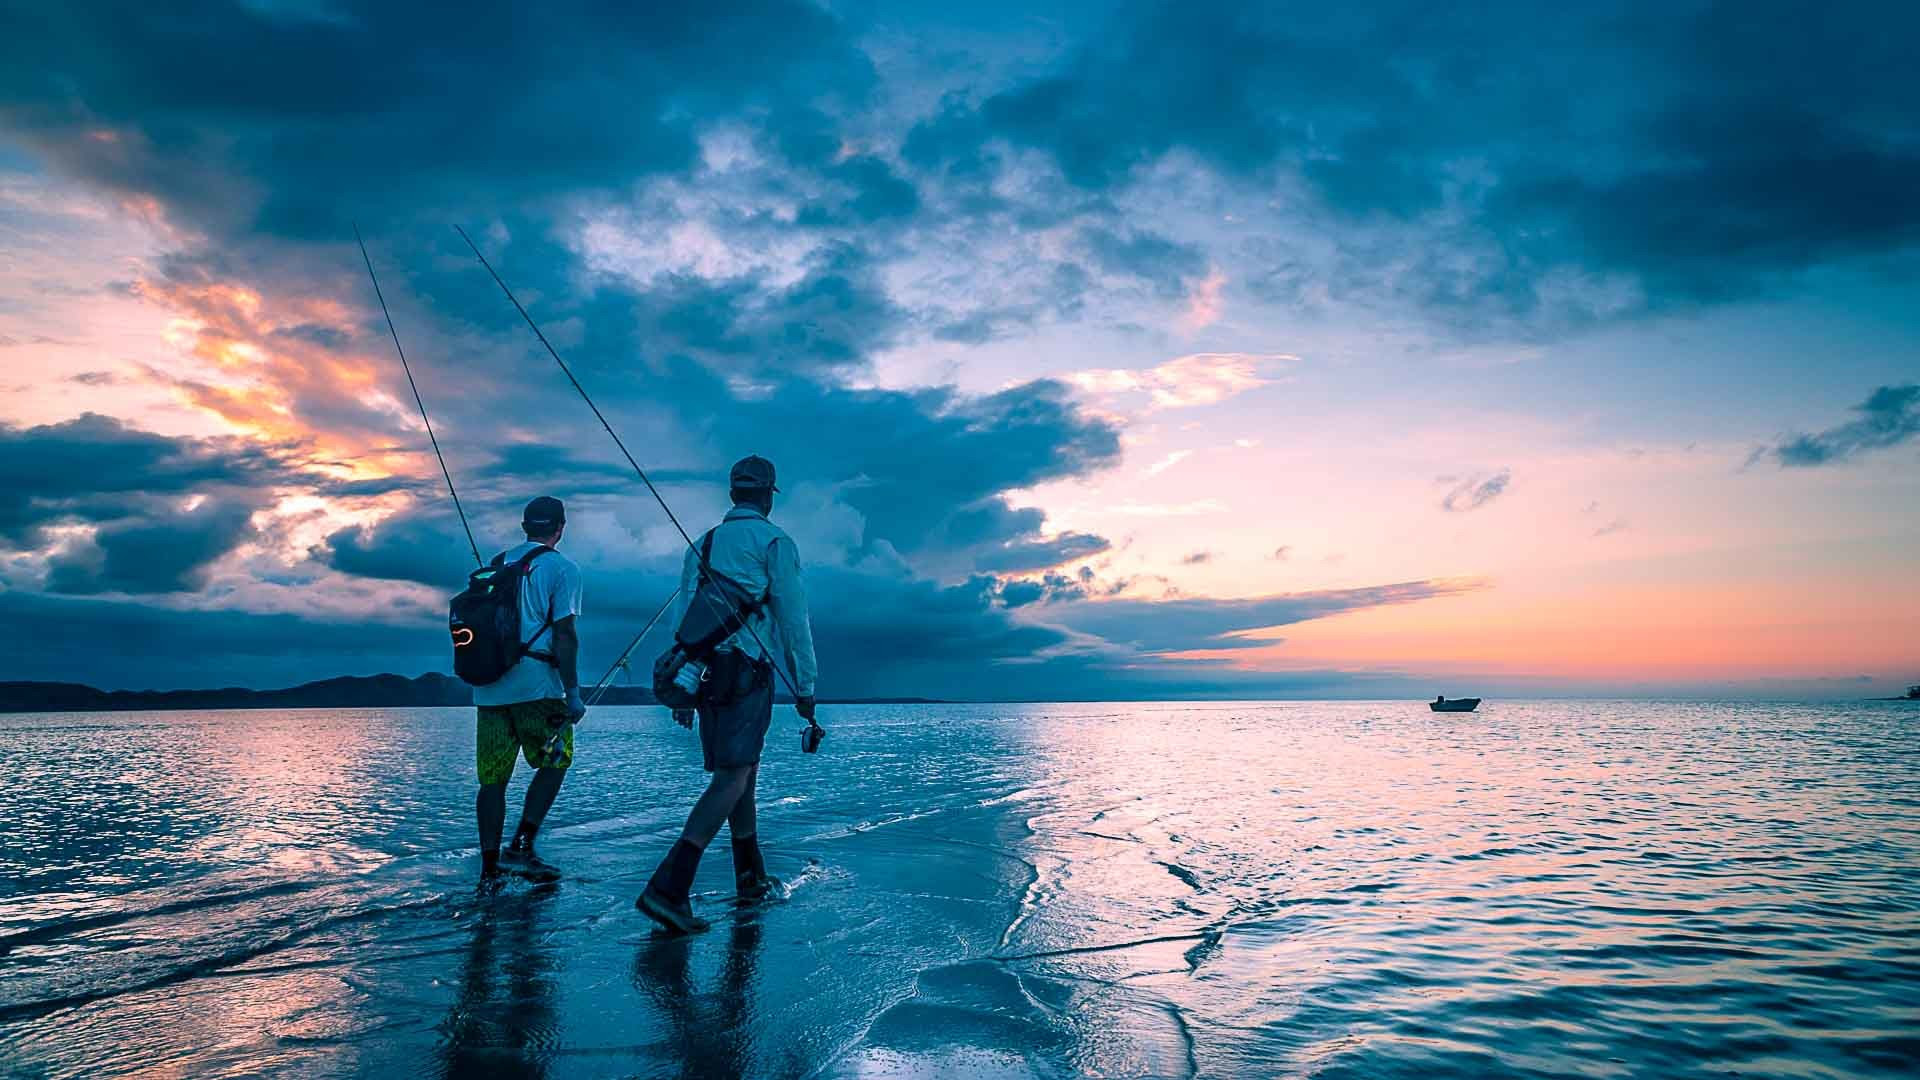 Offshore Fishing Wallpaper 66 Images